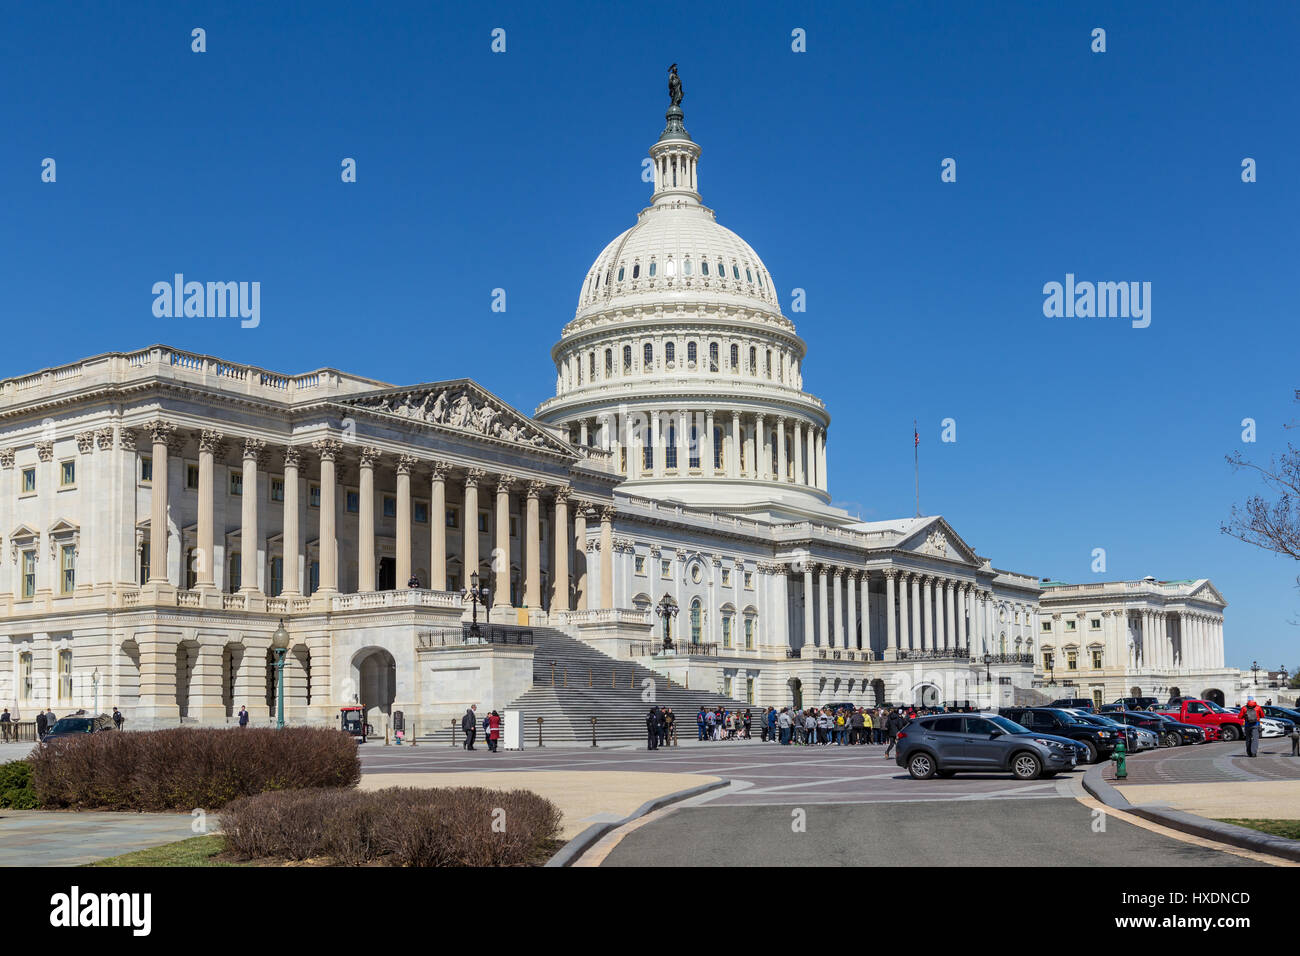 The U.S. Capitol Building in Washington, DC. - Stock Image